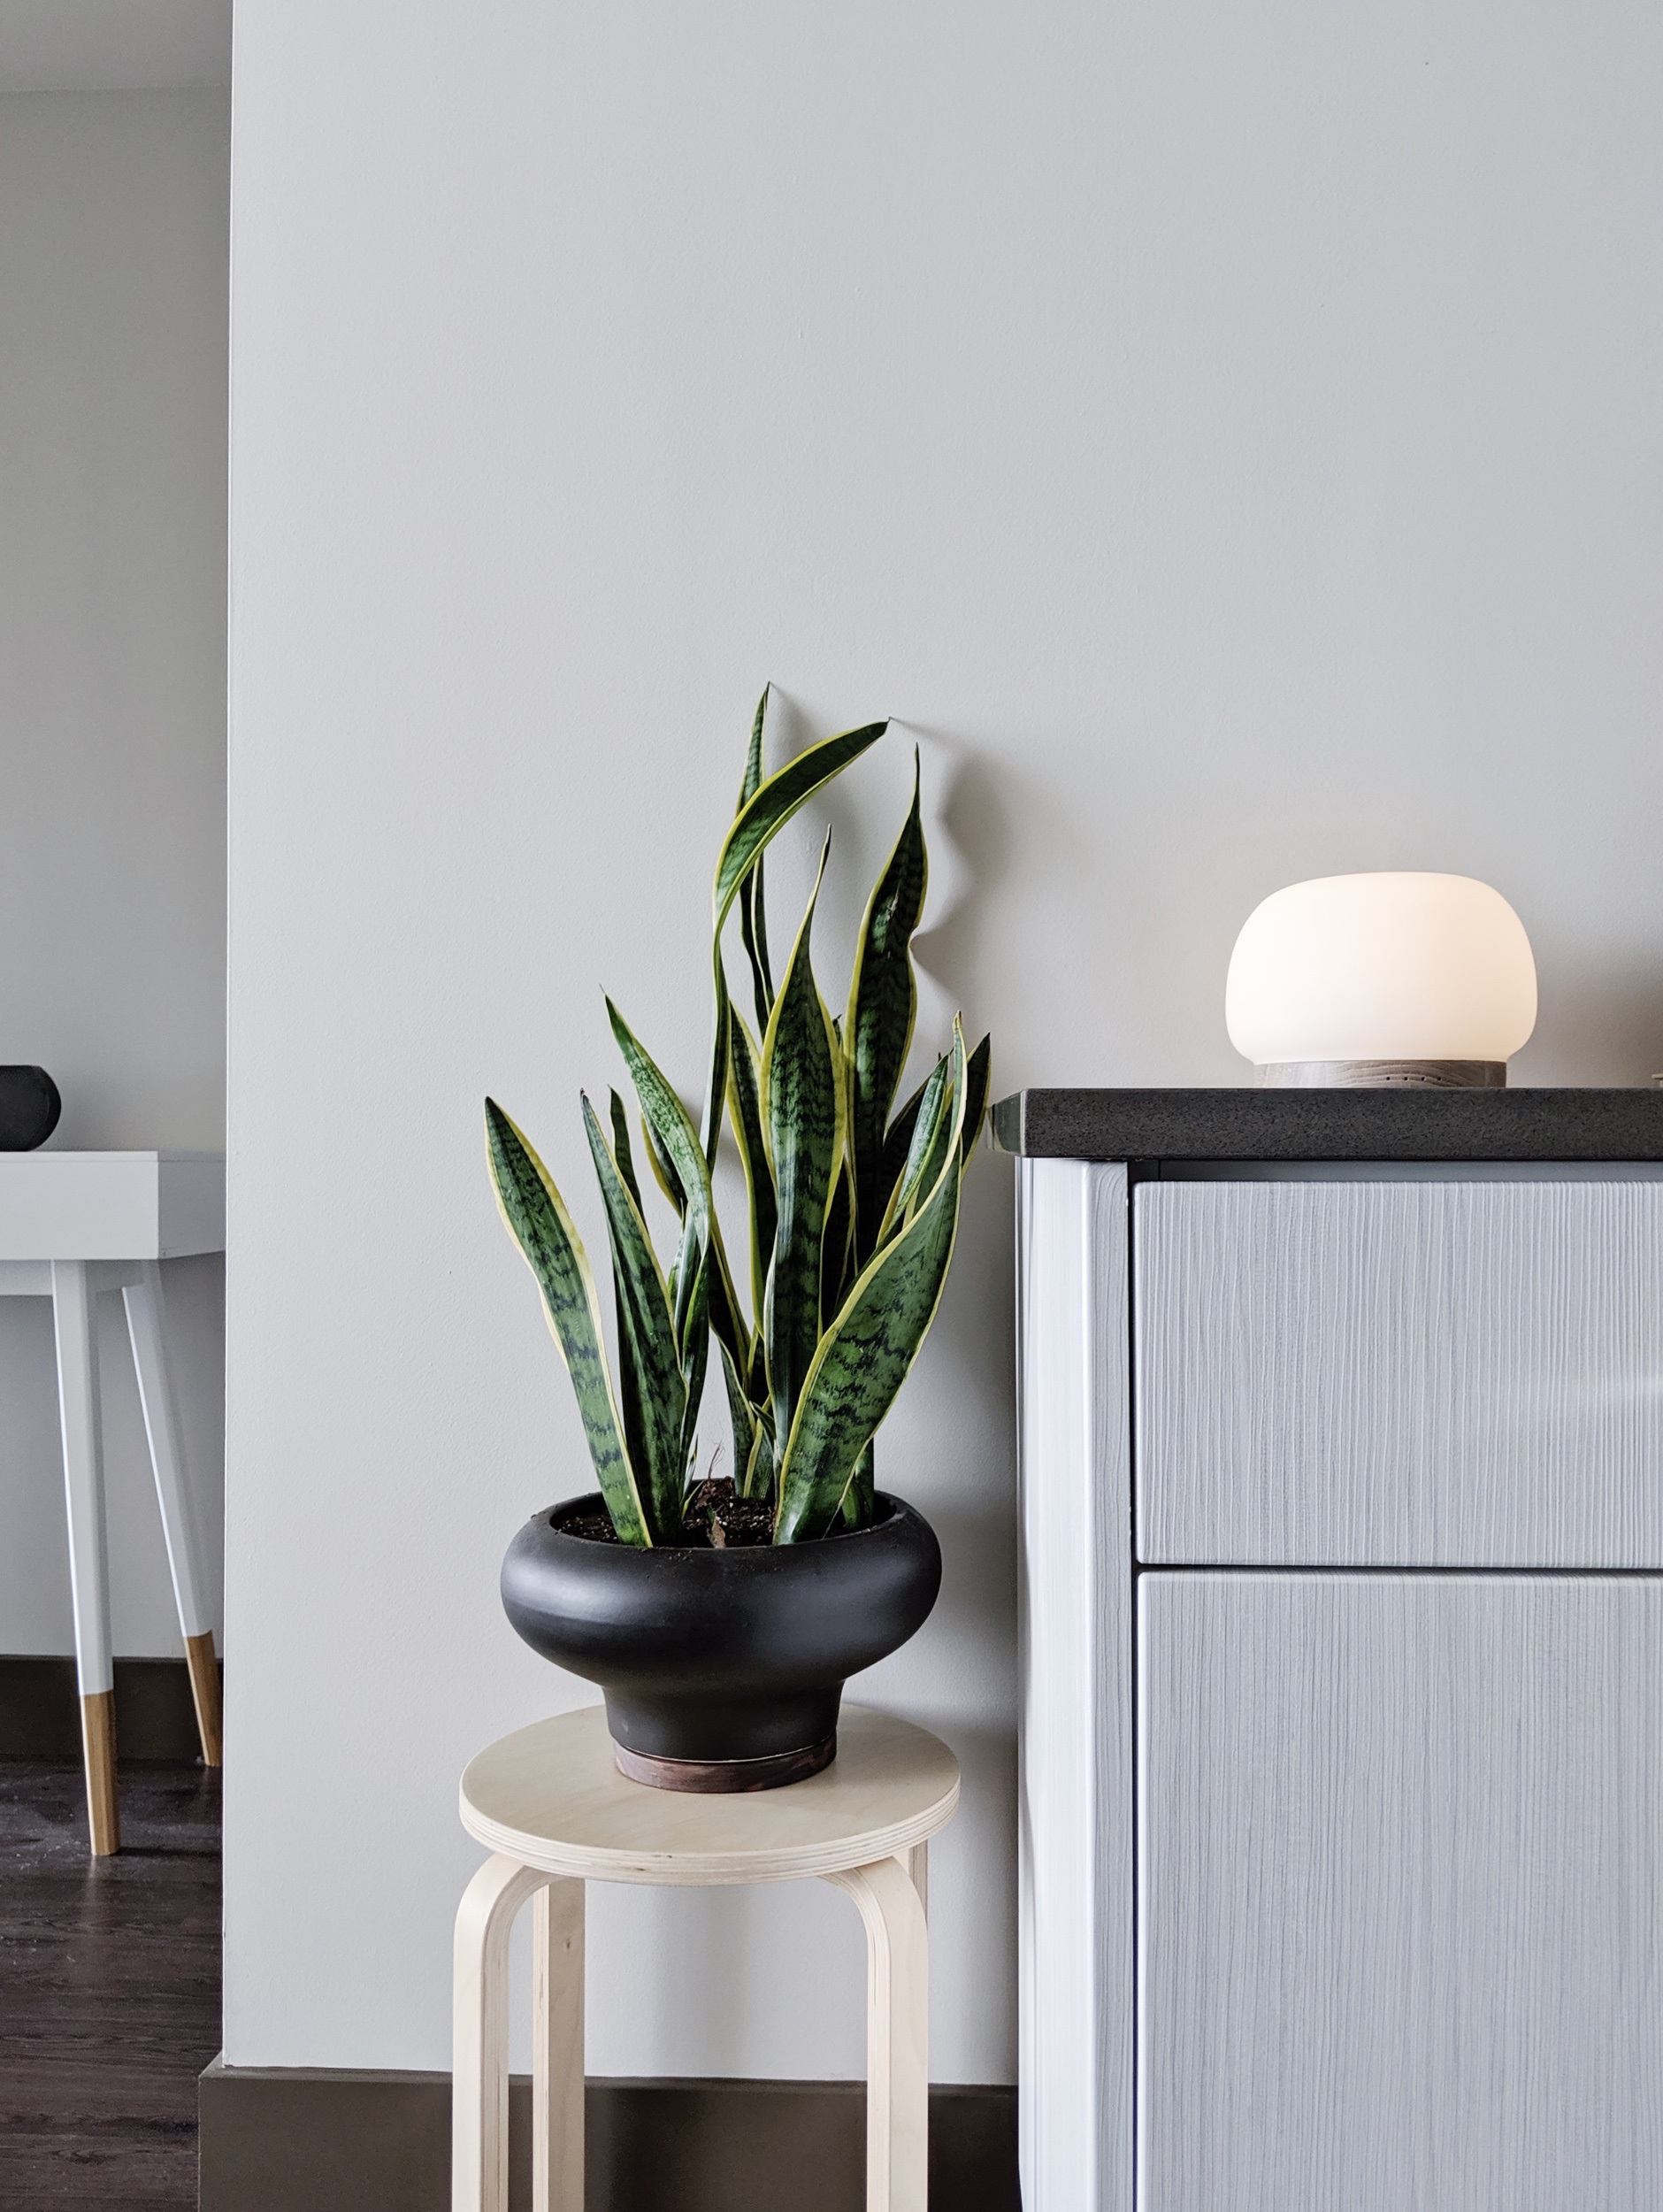 Planter  |  Stool  |  Diffuser  |  Features gifted products